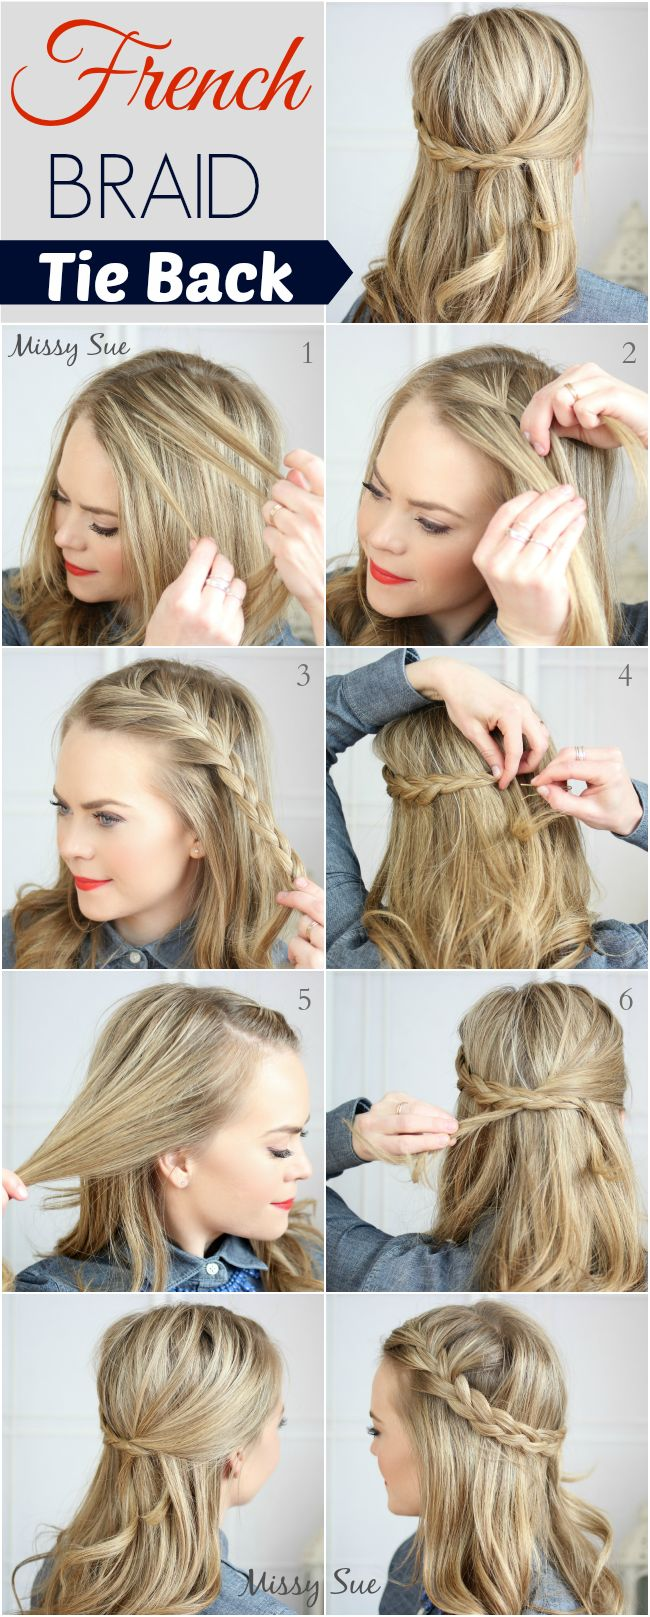 Best Hair Images On Pinterest Easy Hairstyle Hair Dos And - Braid diy pinterest